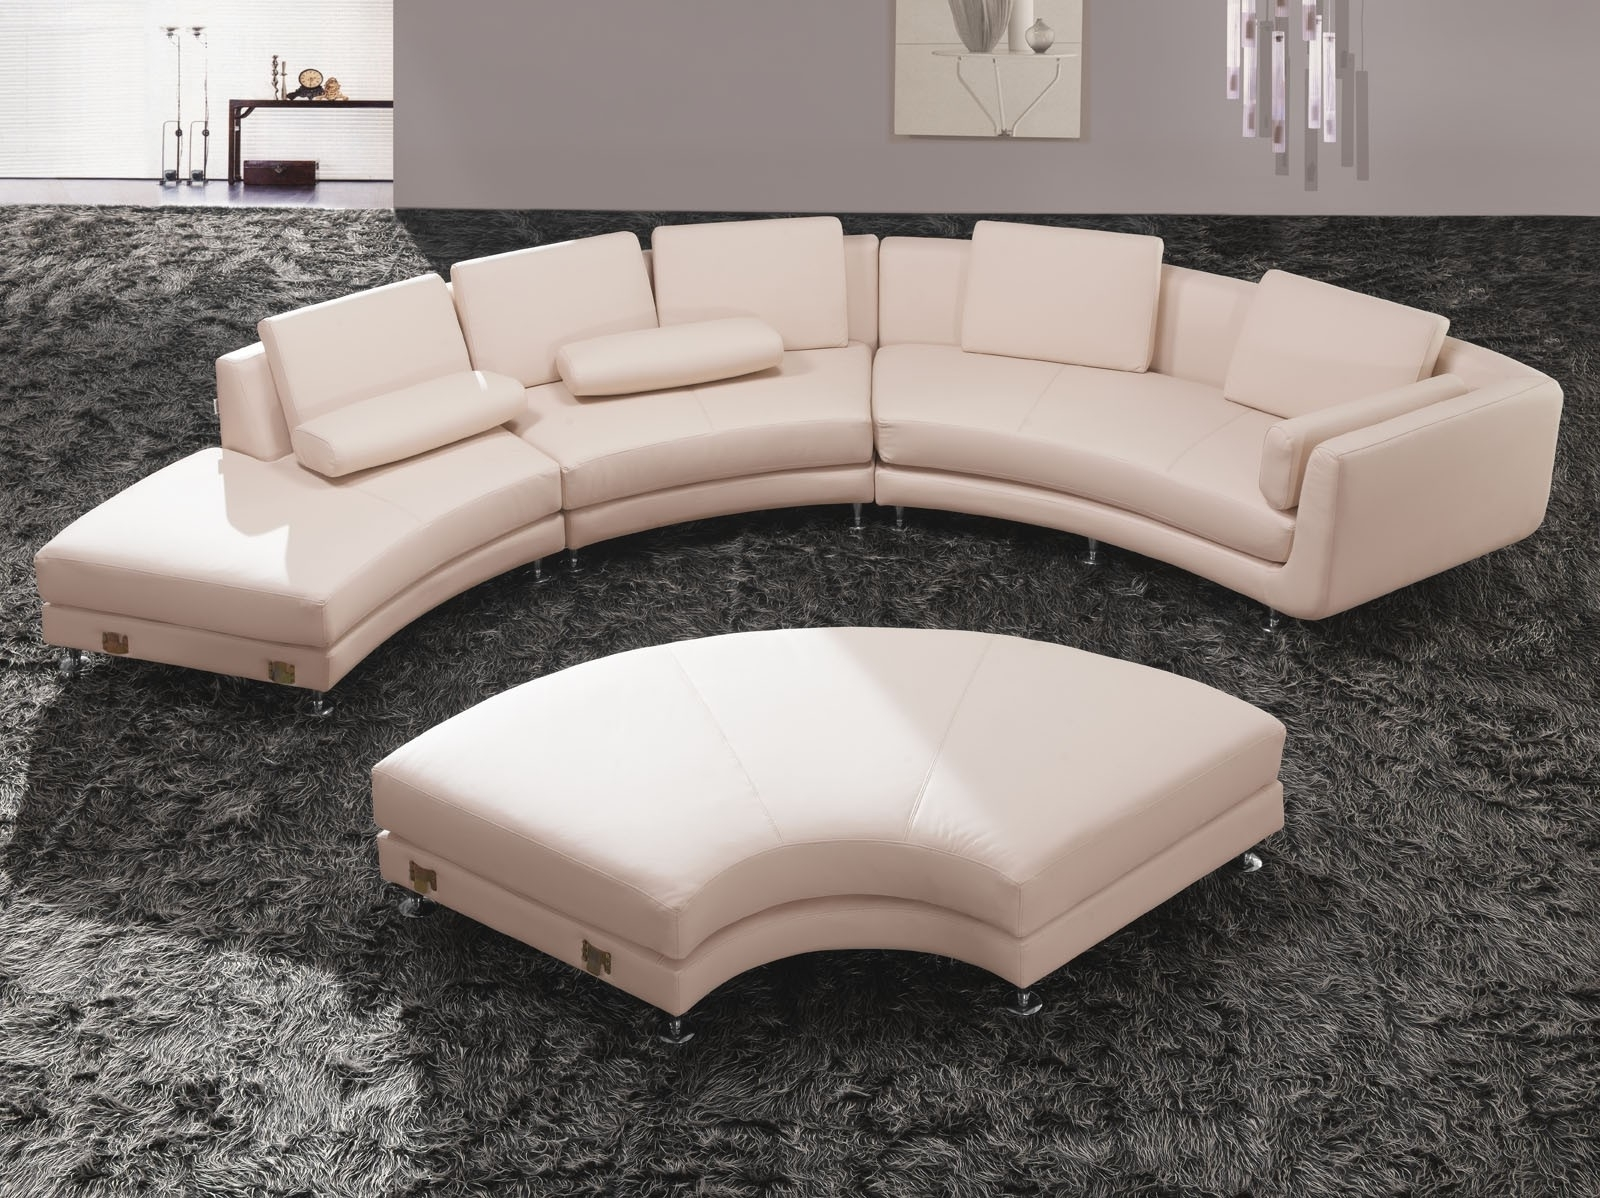 Round Sectional Sofas Regarding Popular Sofa : Glamorous Round Sectional Sofa Bed Curved Leather Tufted (View 16 of 20)